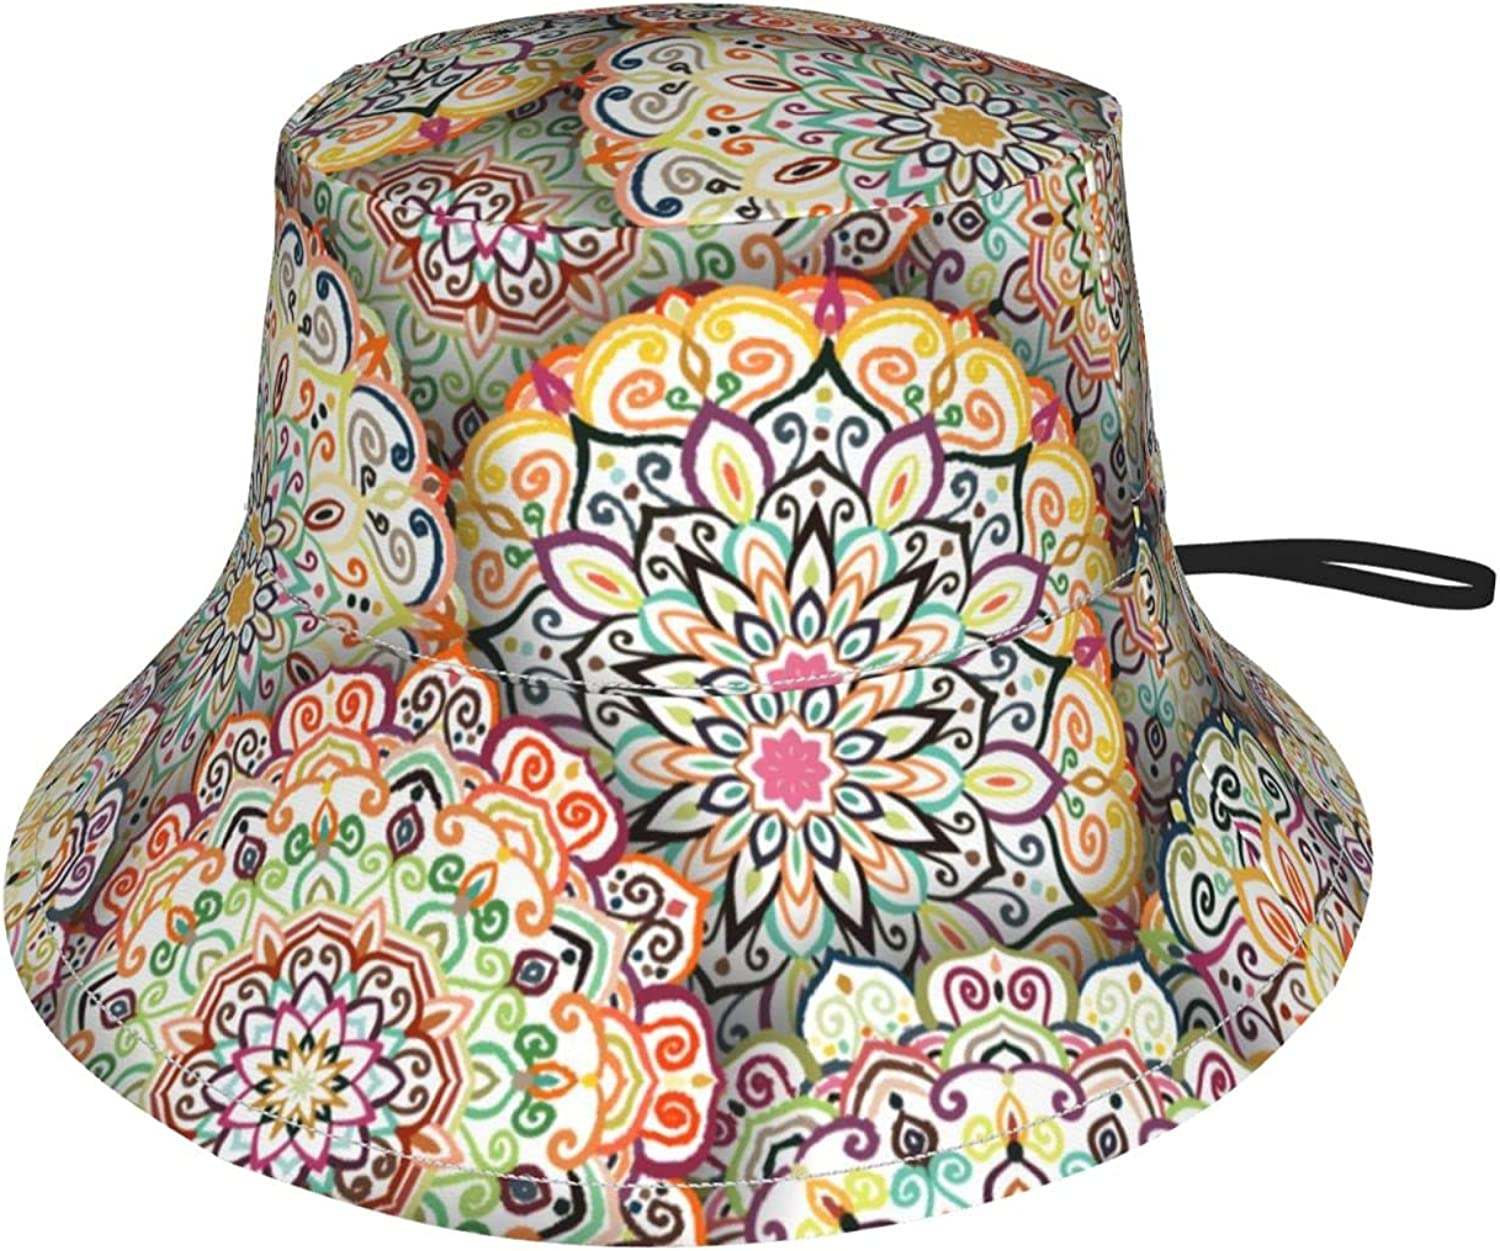 Kids Bucket Hat Intricate Mandala Floral Pattern Wide Brim Sun Protection Fishing Hat for Boys and Girls Outdoor Activities